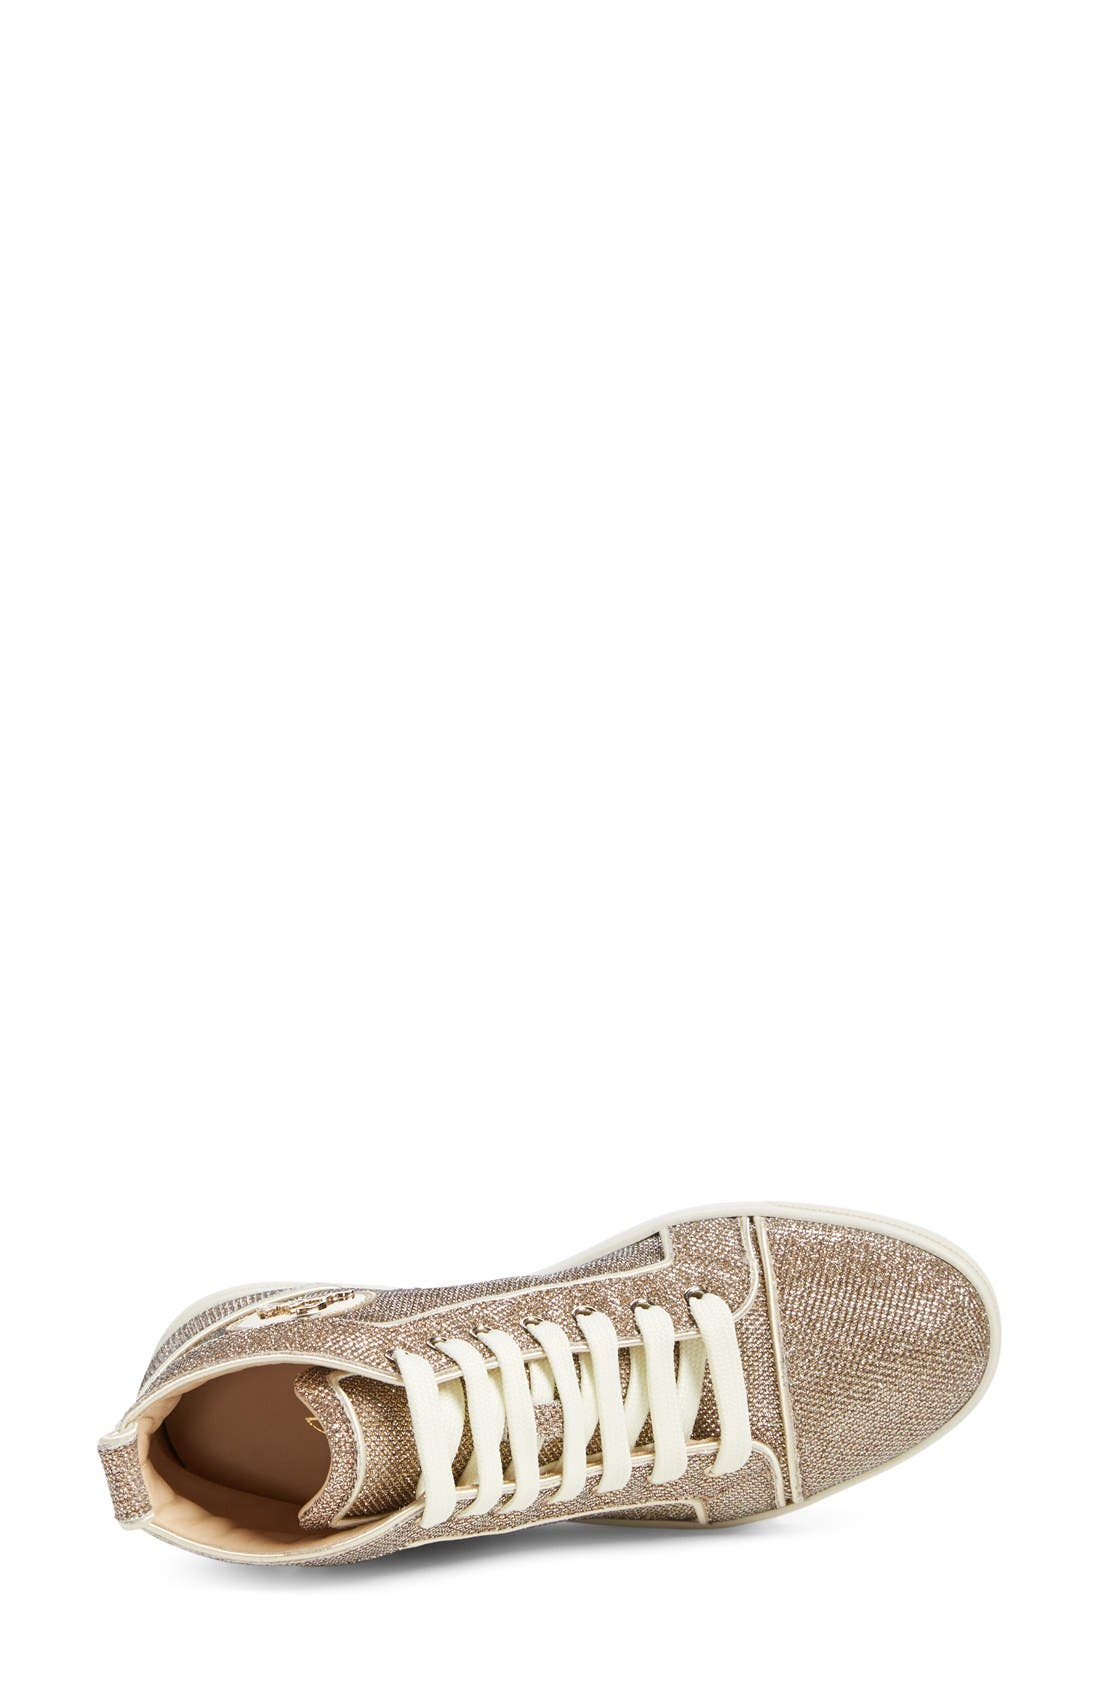 Bip Bip High Top Sneaker,                             Alternate thumbnail 7, color,